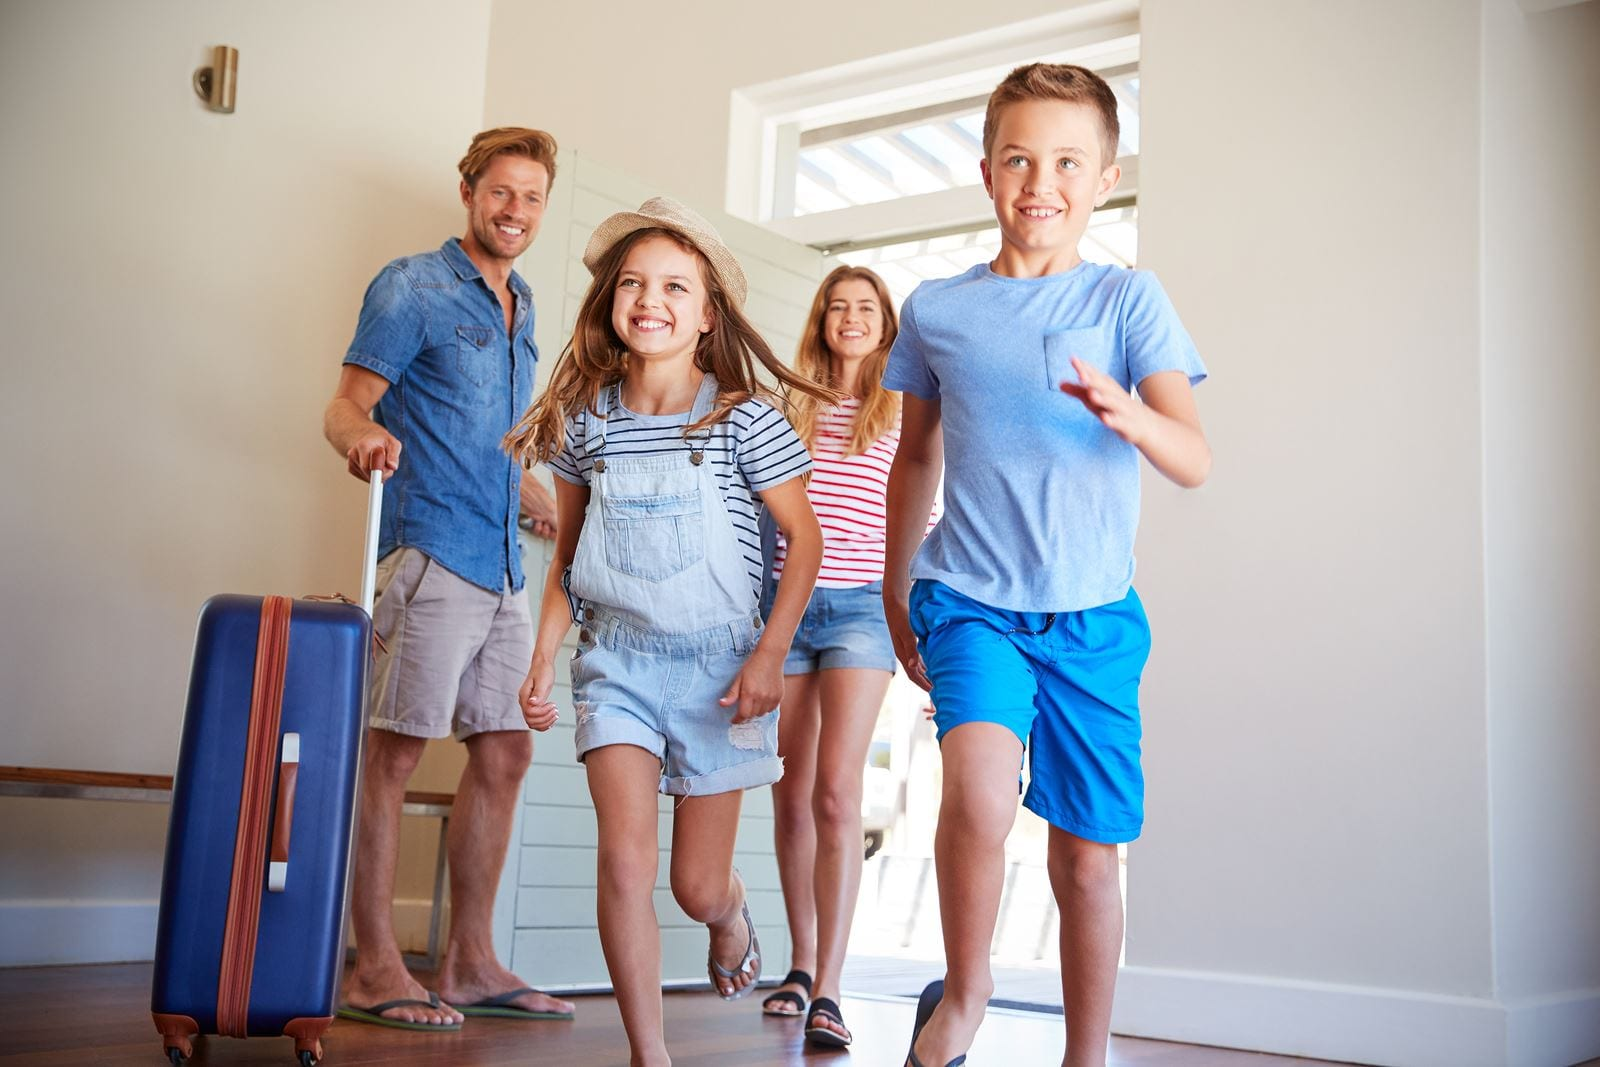 Are Vacation Rentals a Good Investment for Beginners? | Mashvisor